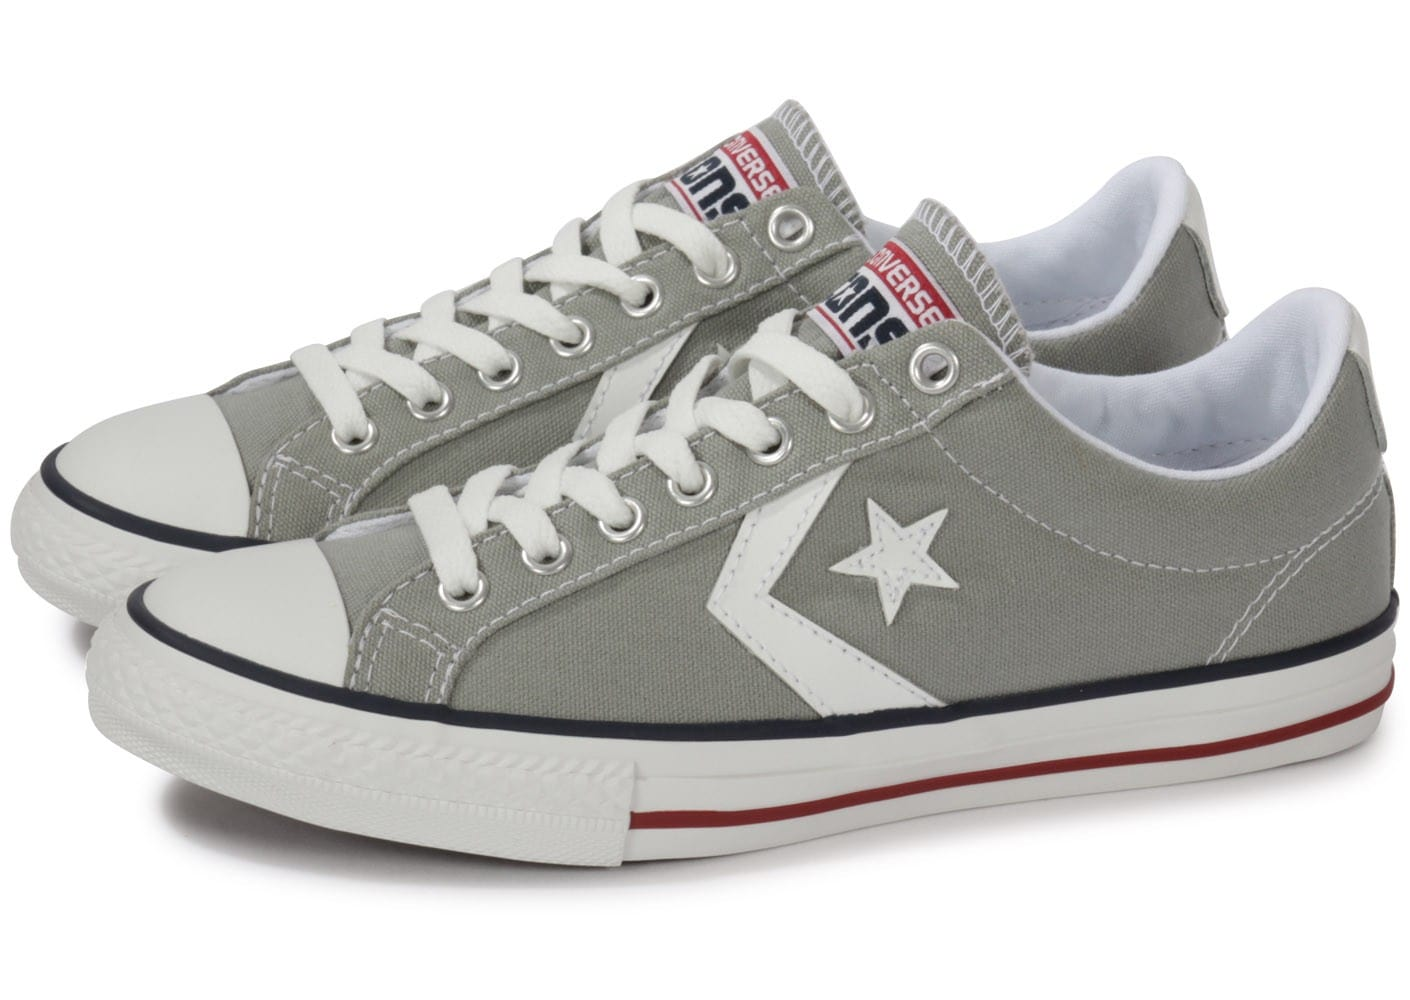 converse basse homme grise